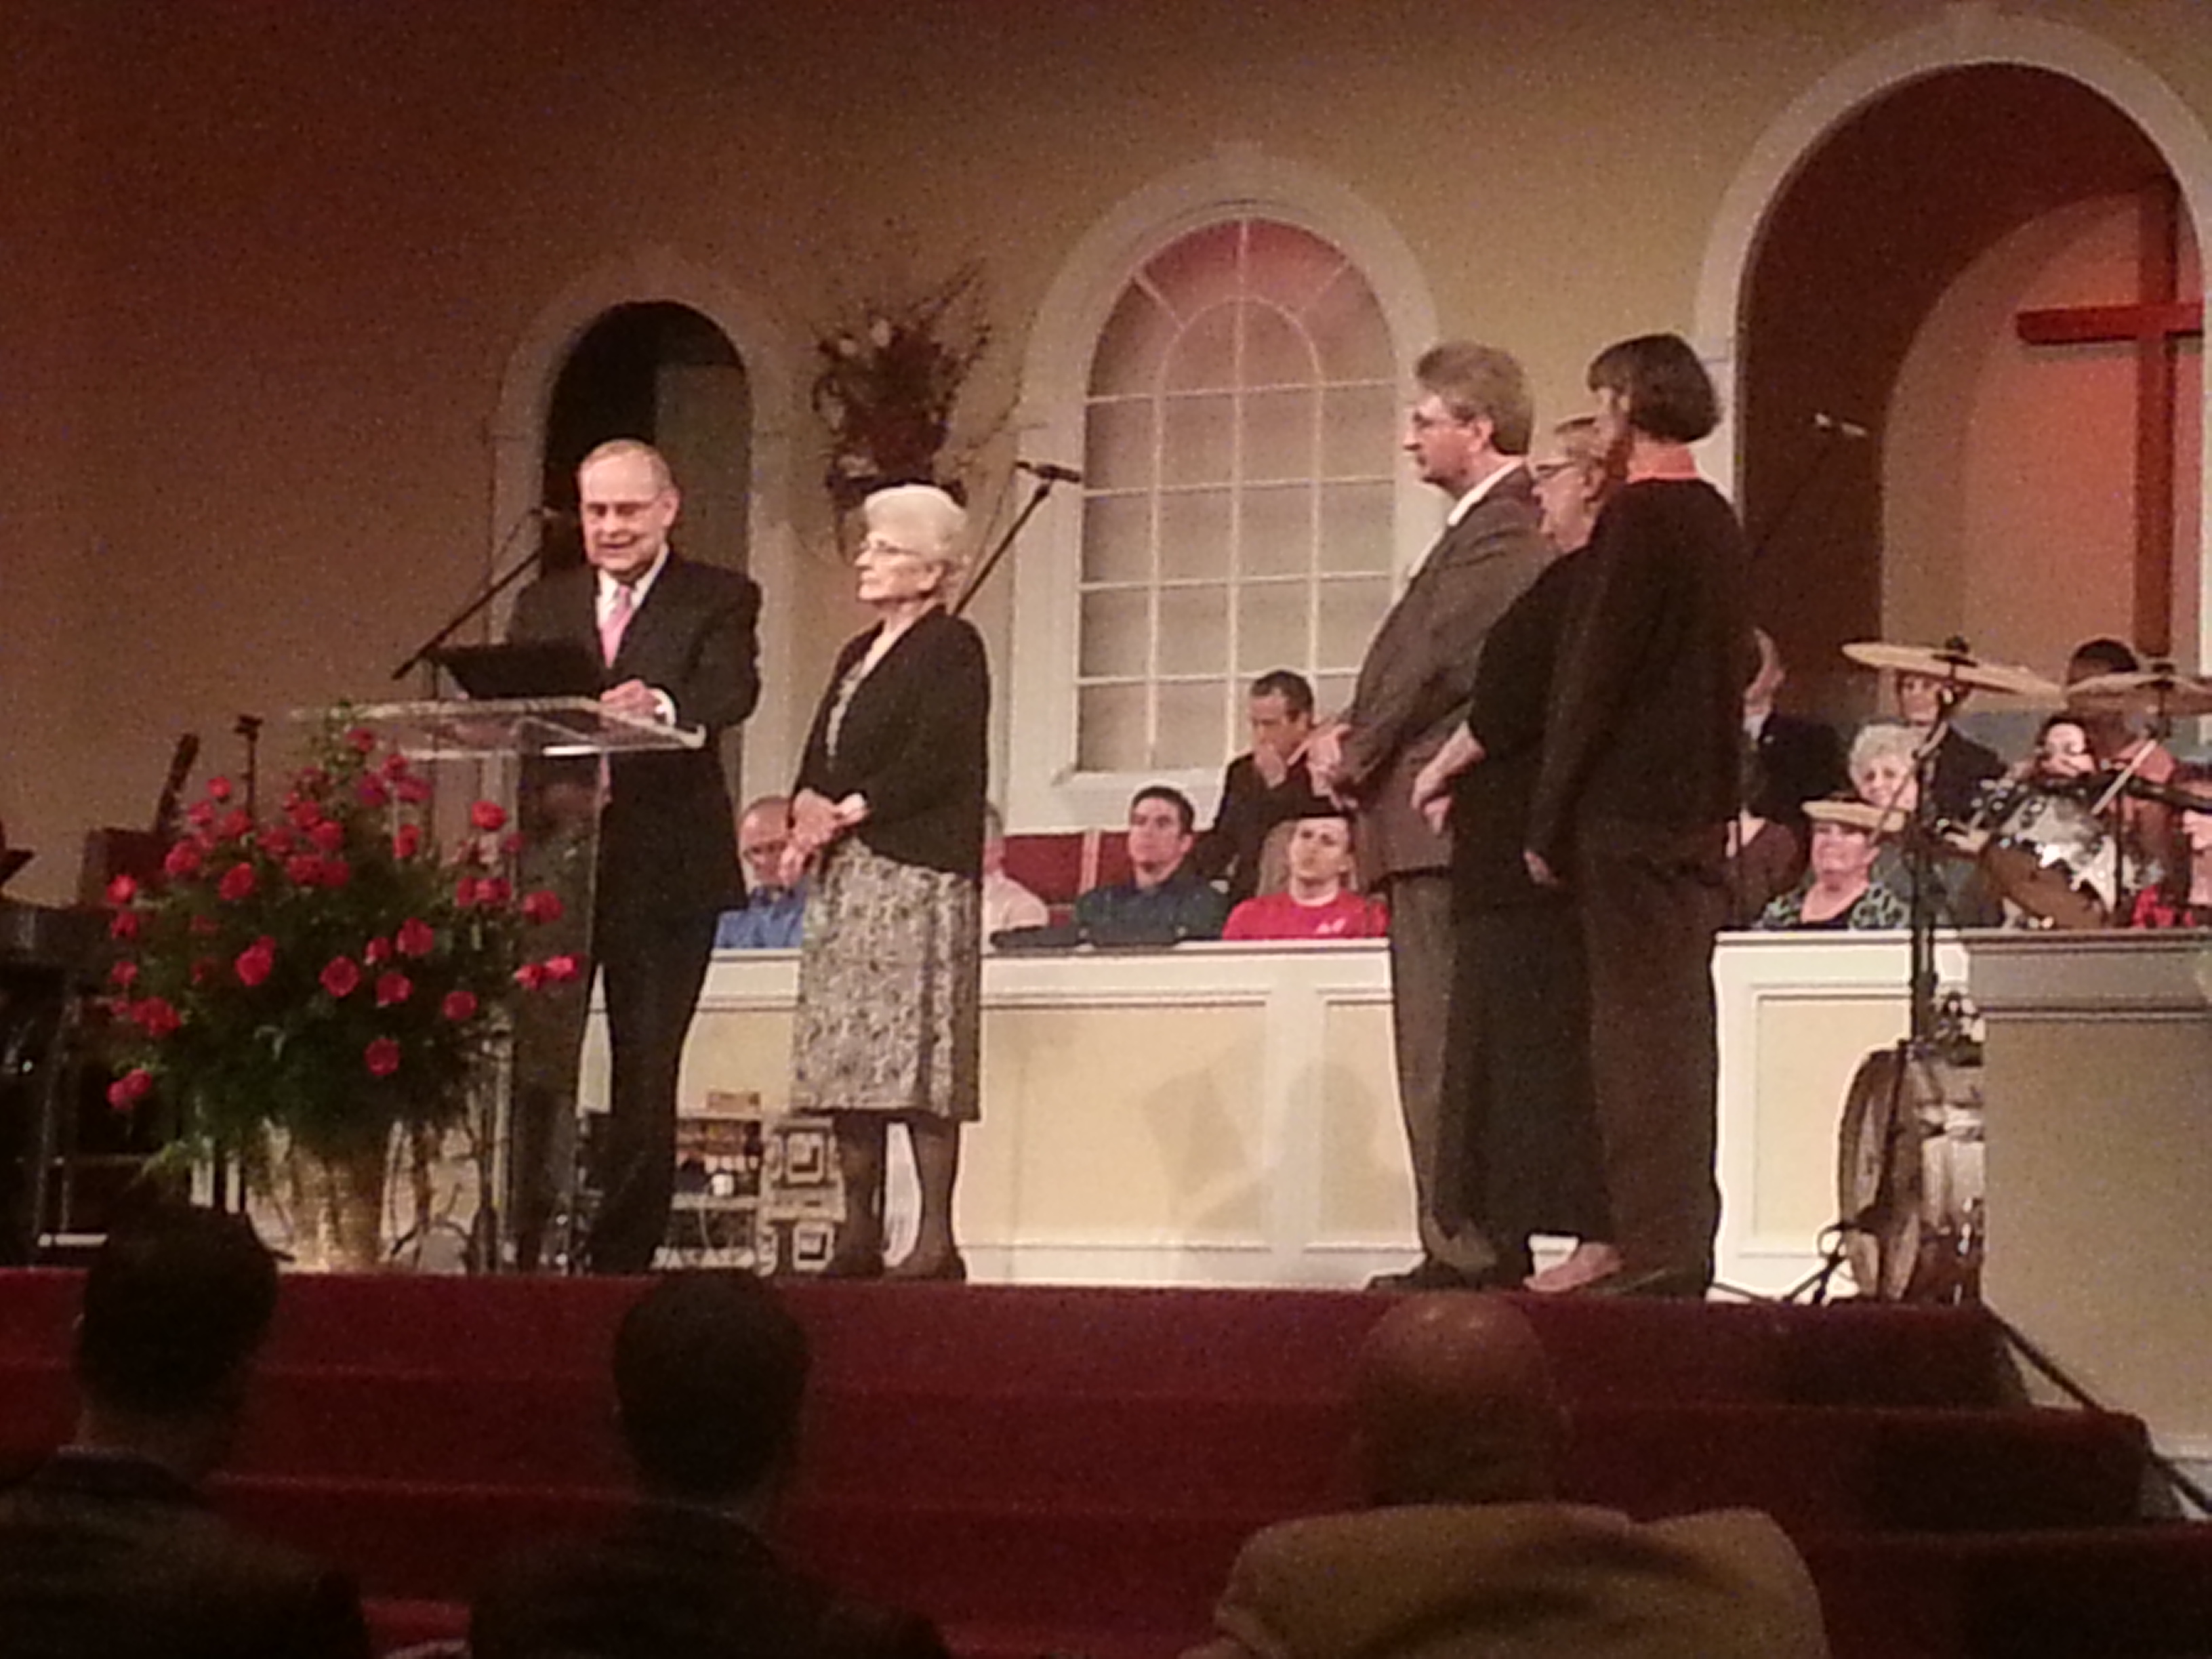 John Franzel (deceased) and family honored for church planting in Saginaw at the Winter BBFI meeting 2013 (Georgia).